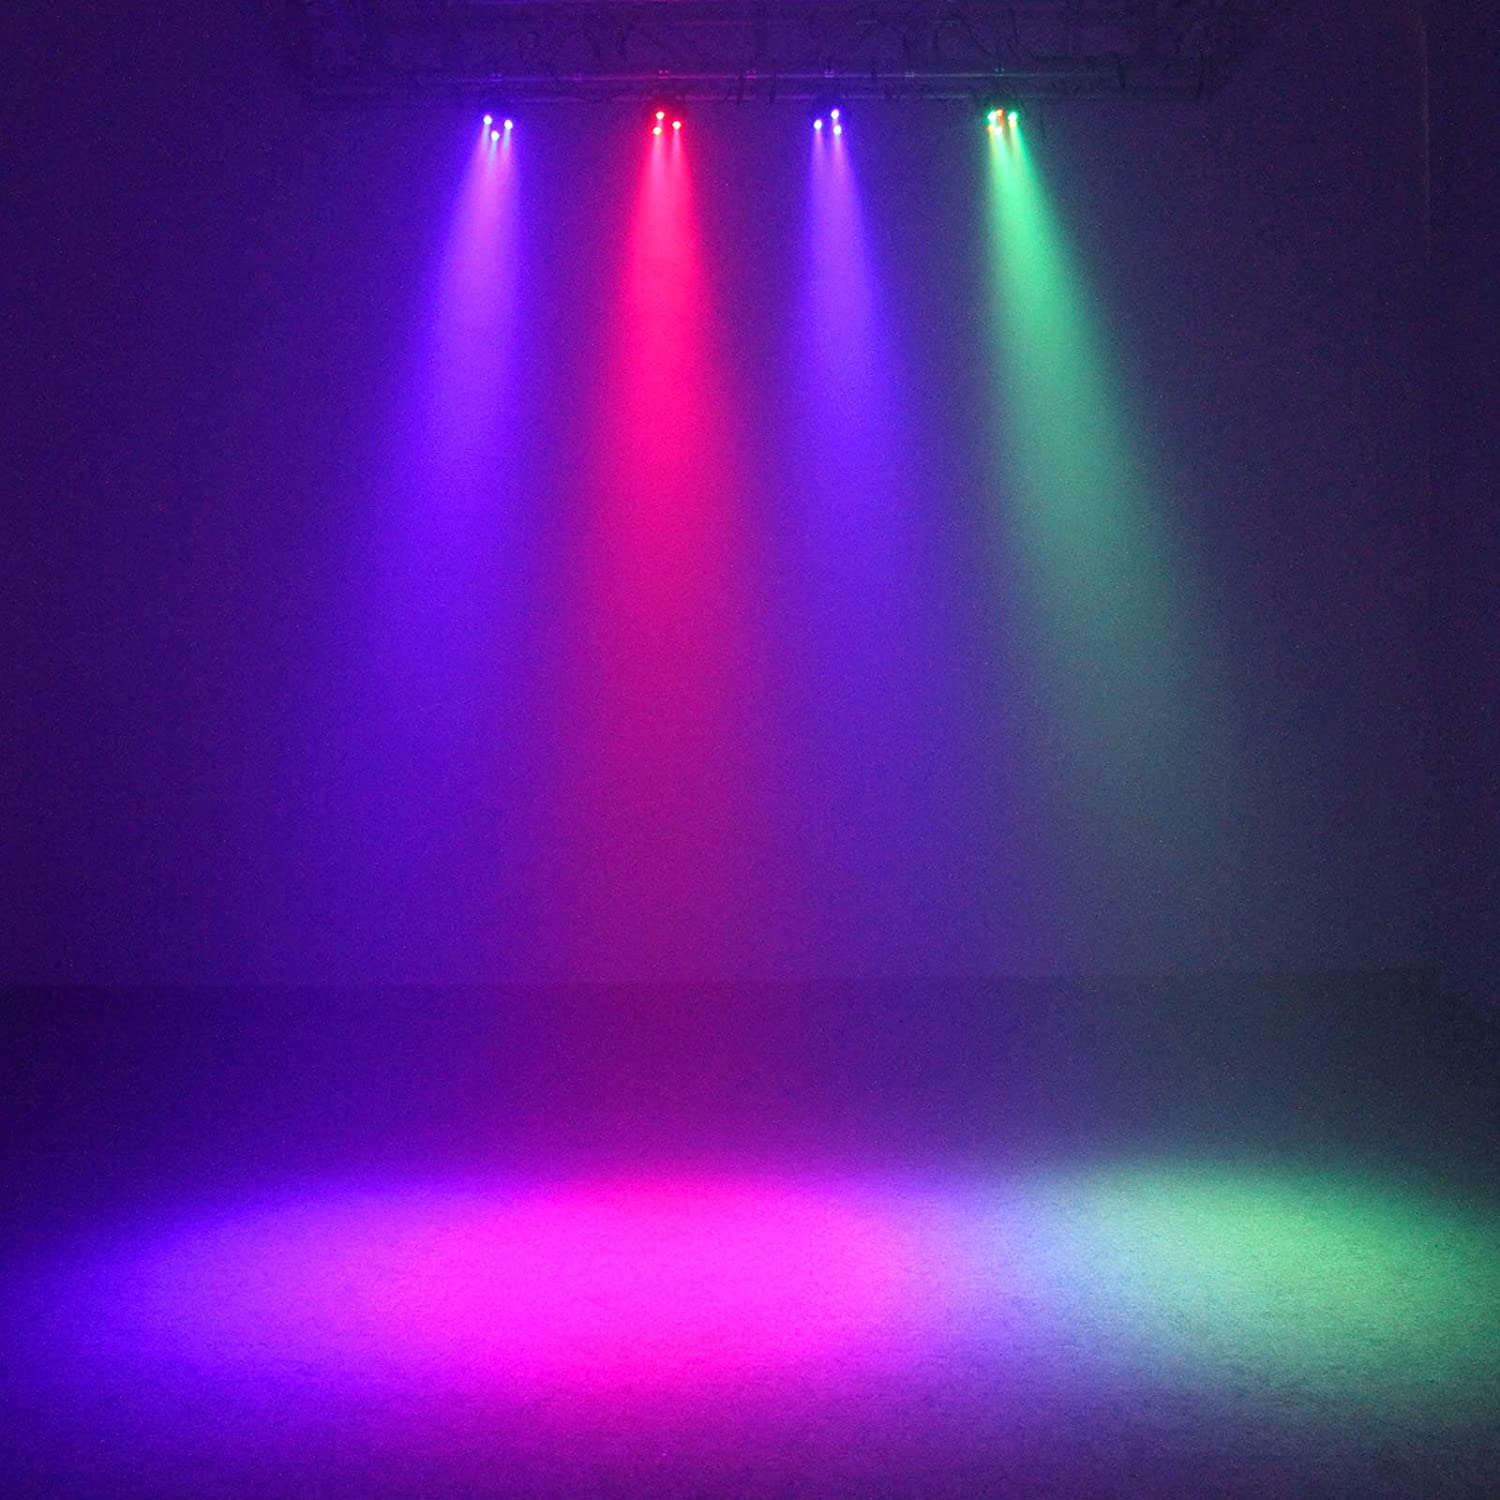 Amazon.com TSSS RGBW Mixing Color 12 LED Par Can Light DMX 8CH Stage Background Lighting for Party Show Wedding Live Concert (4 Pack) Musical Instruments & Amazon.com: TSSS RGBW Mixing Color 12 LED Par Can Light DMX 8CH ...